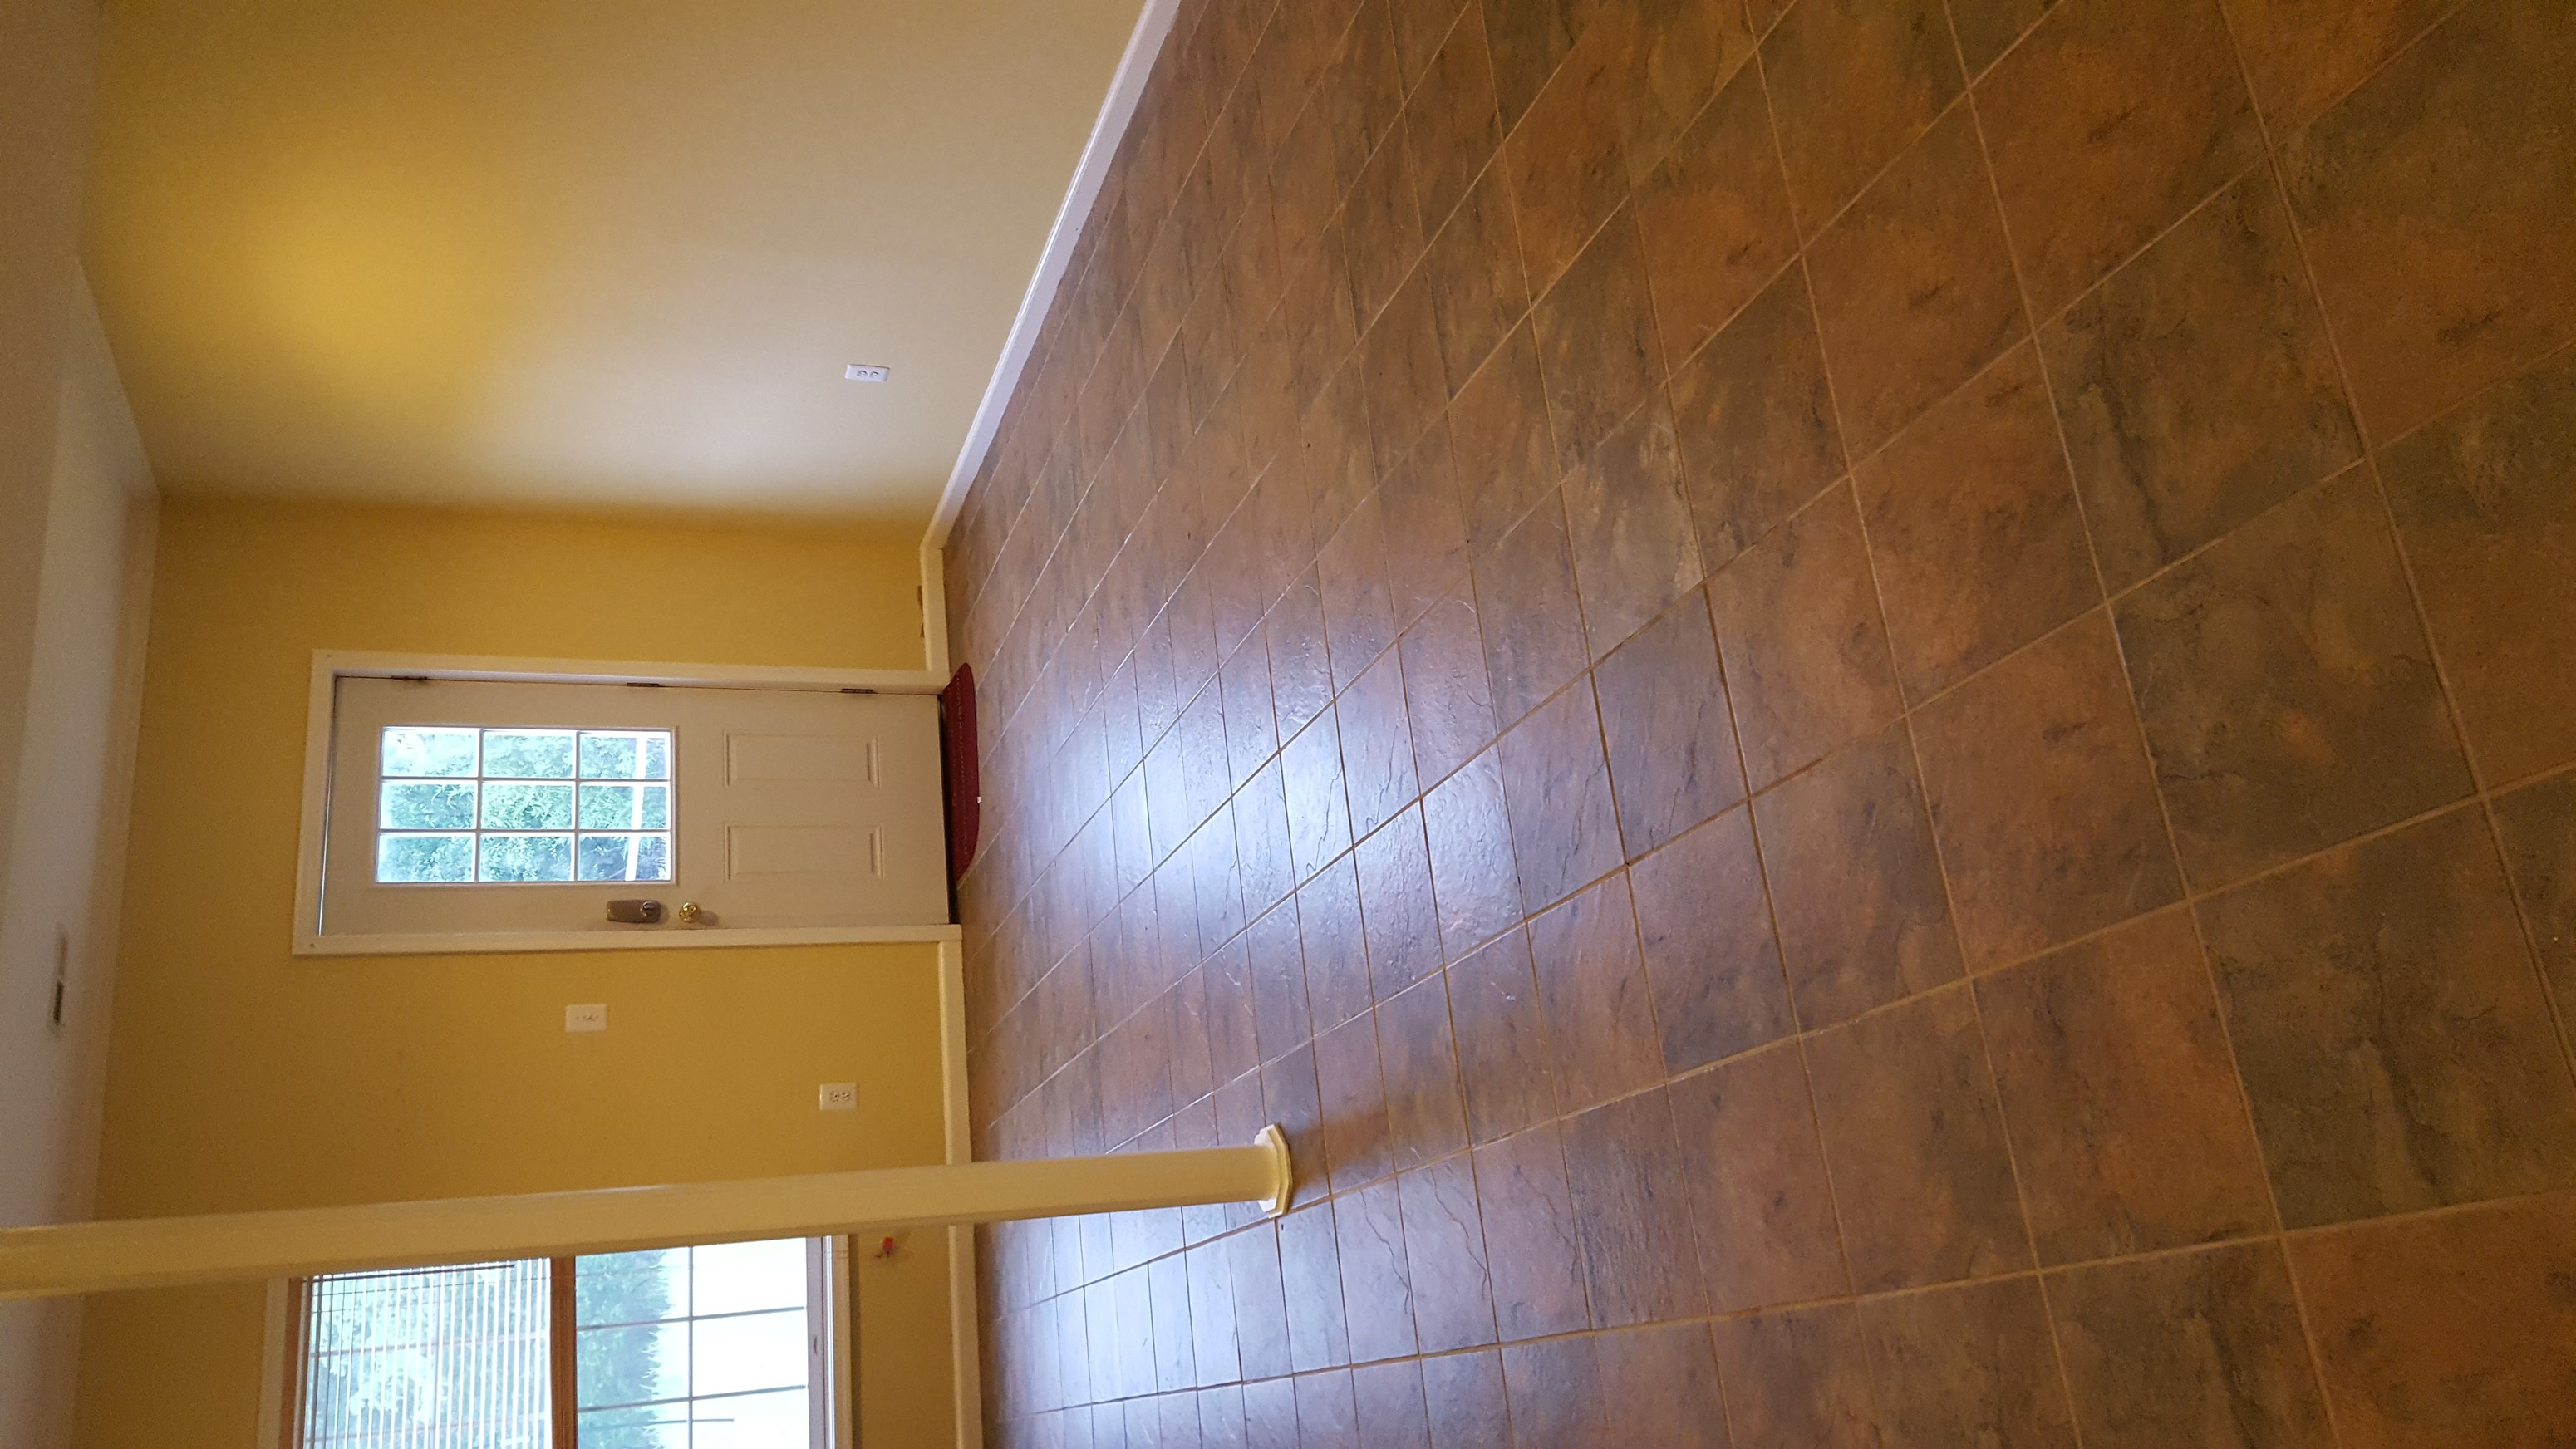 Find Basement Apartment For Rent In Hyattsville MD Sulekha Rentals - Basement apartments for rent in pg maryland